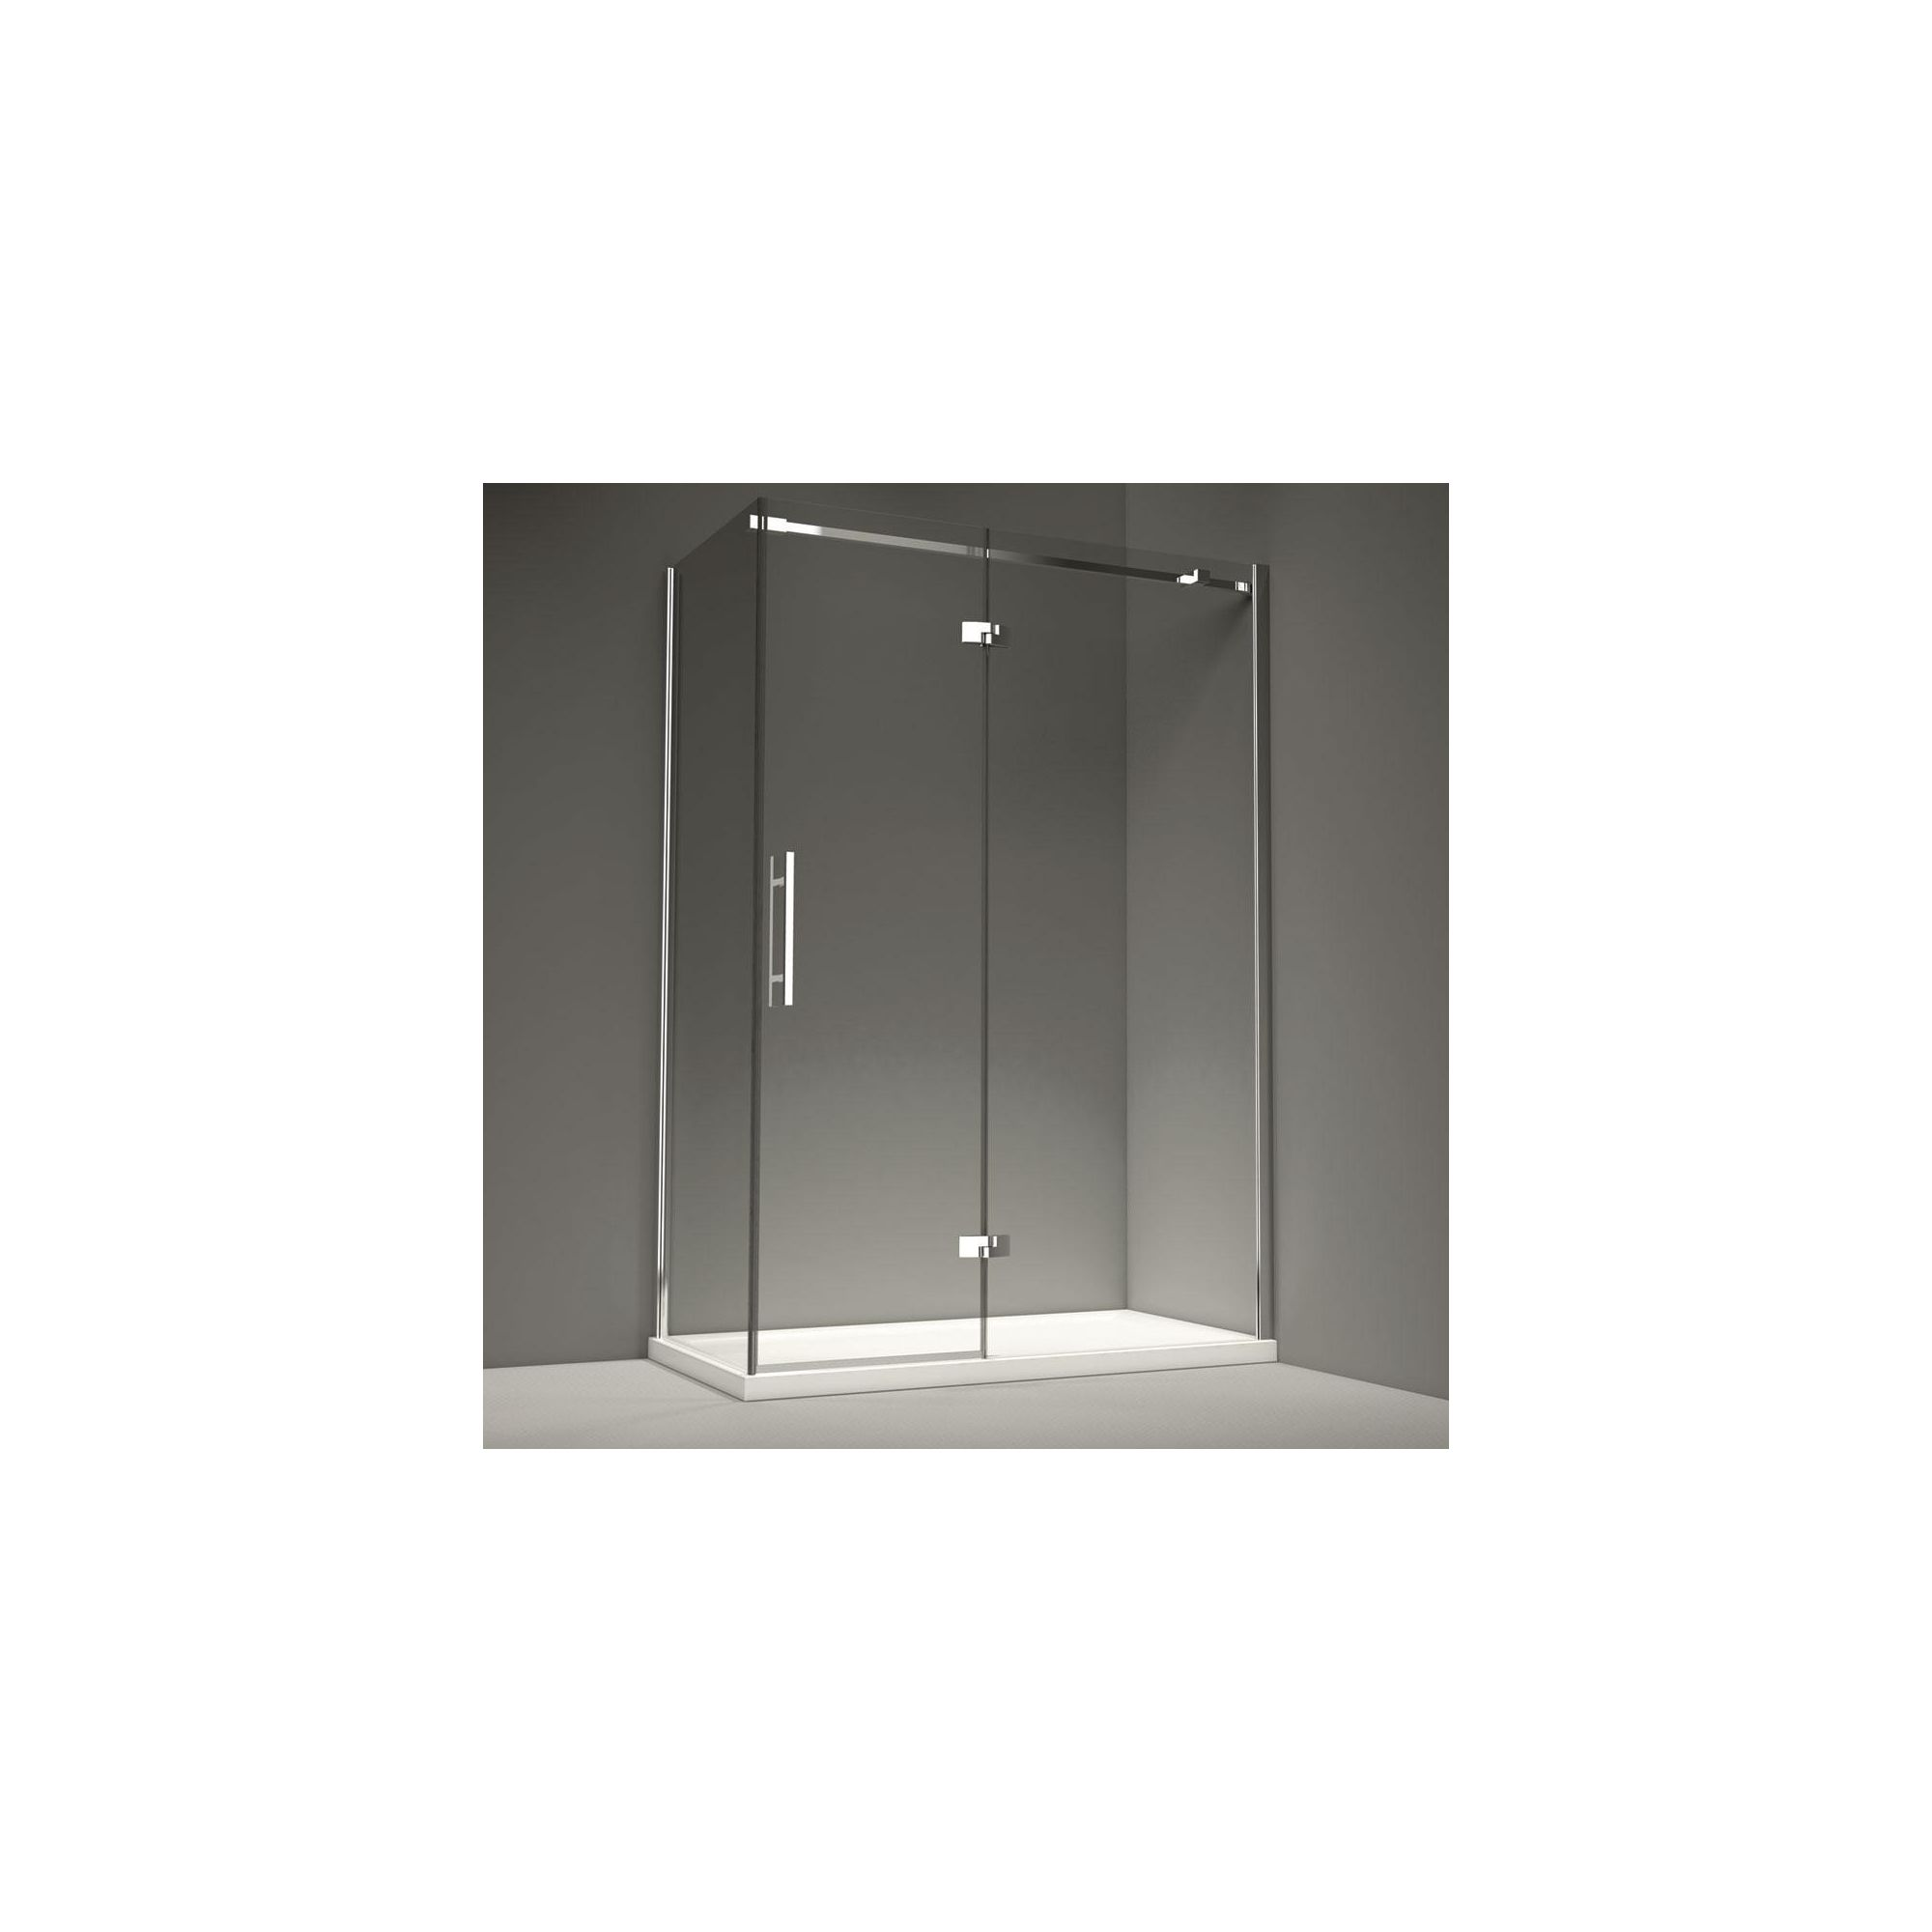 Merlyn Series 9 Inline Hinged Shower Door, 1200mm Wide, 8mm Glass, Right Handed at Tesco Direct